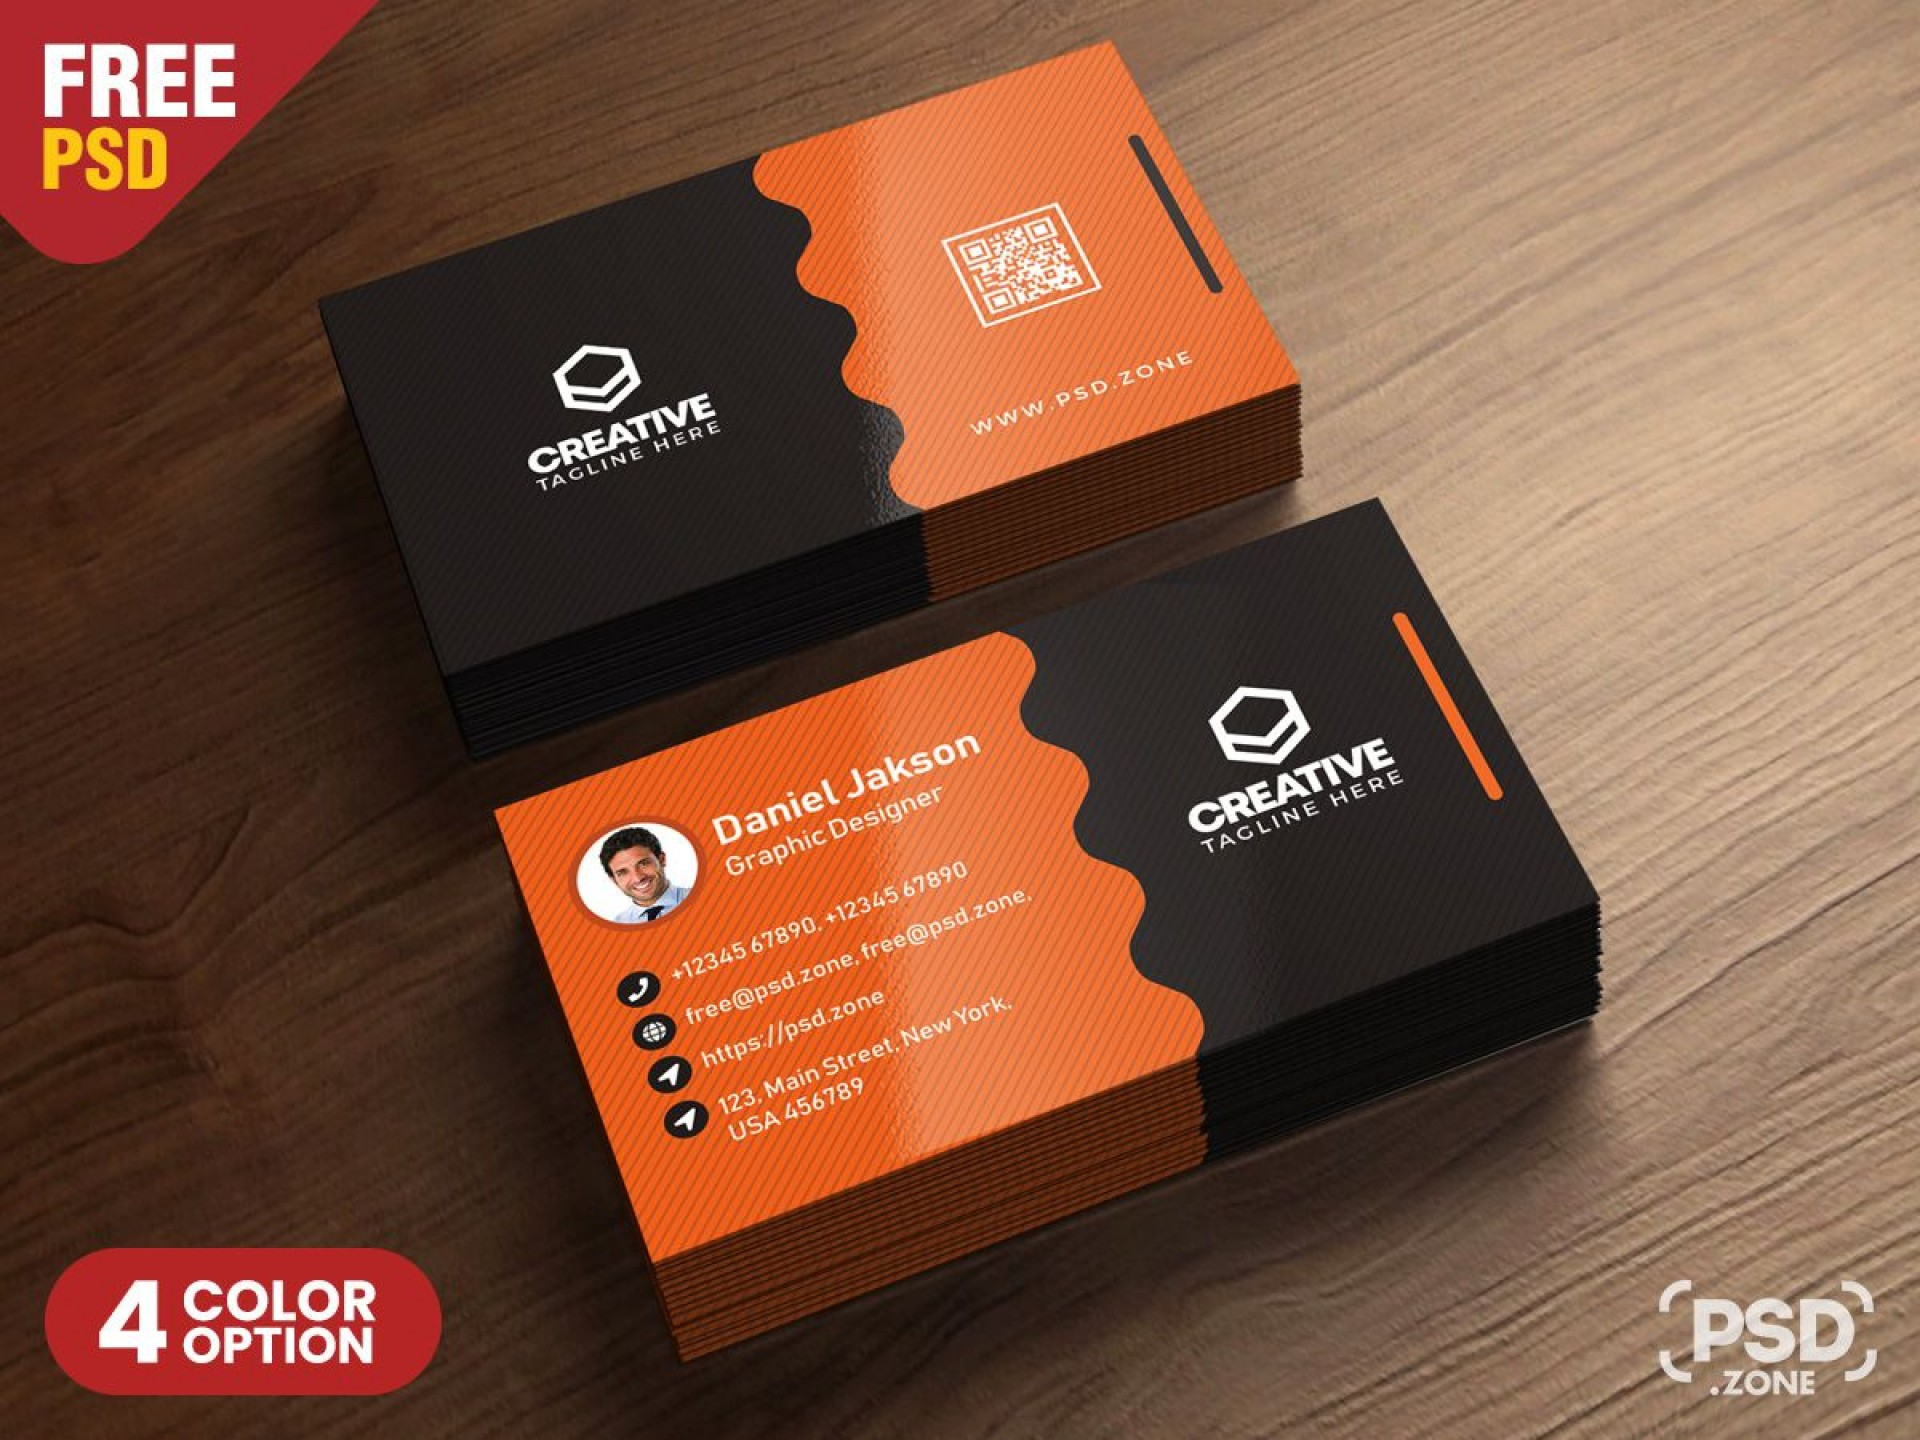 004 Formidable Busines Card Template Psd Design  Professional Photographer Freebie Visiting File Free Download1920